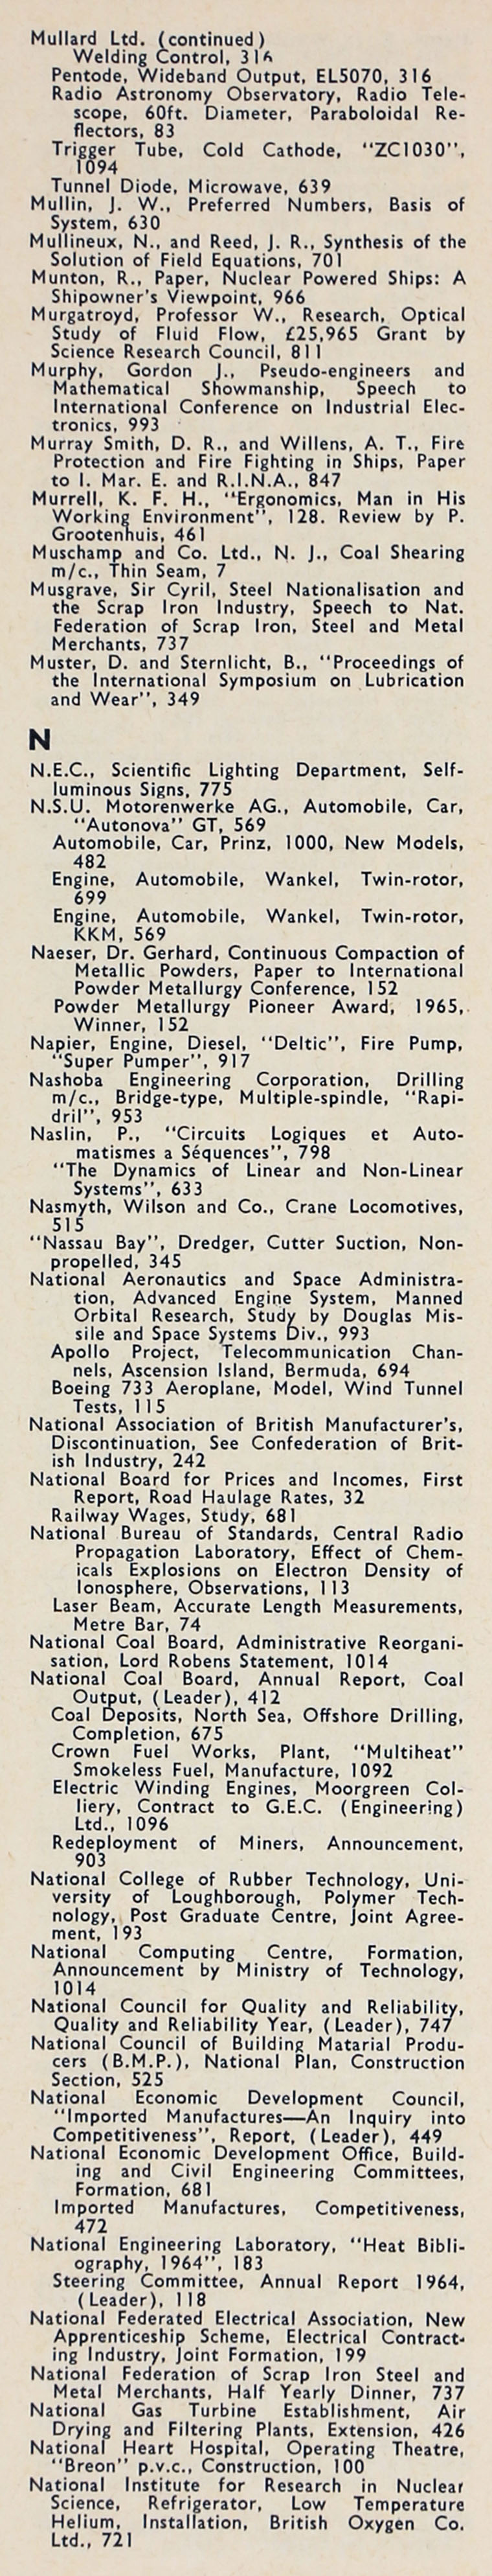 The Engineer 1965 Jul Dec Index